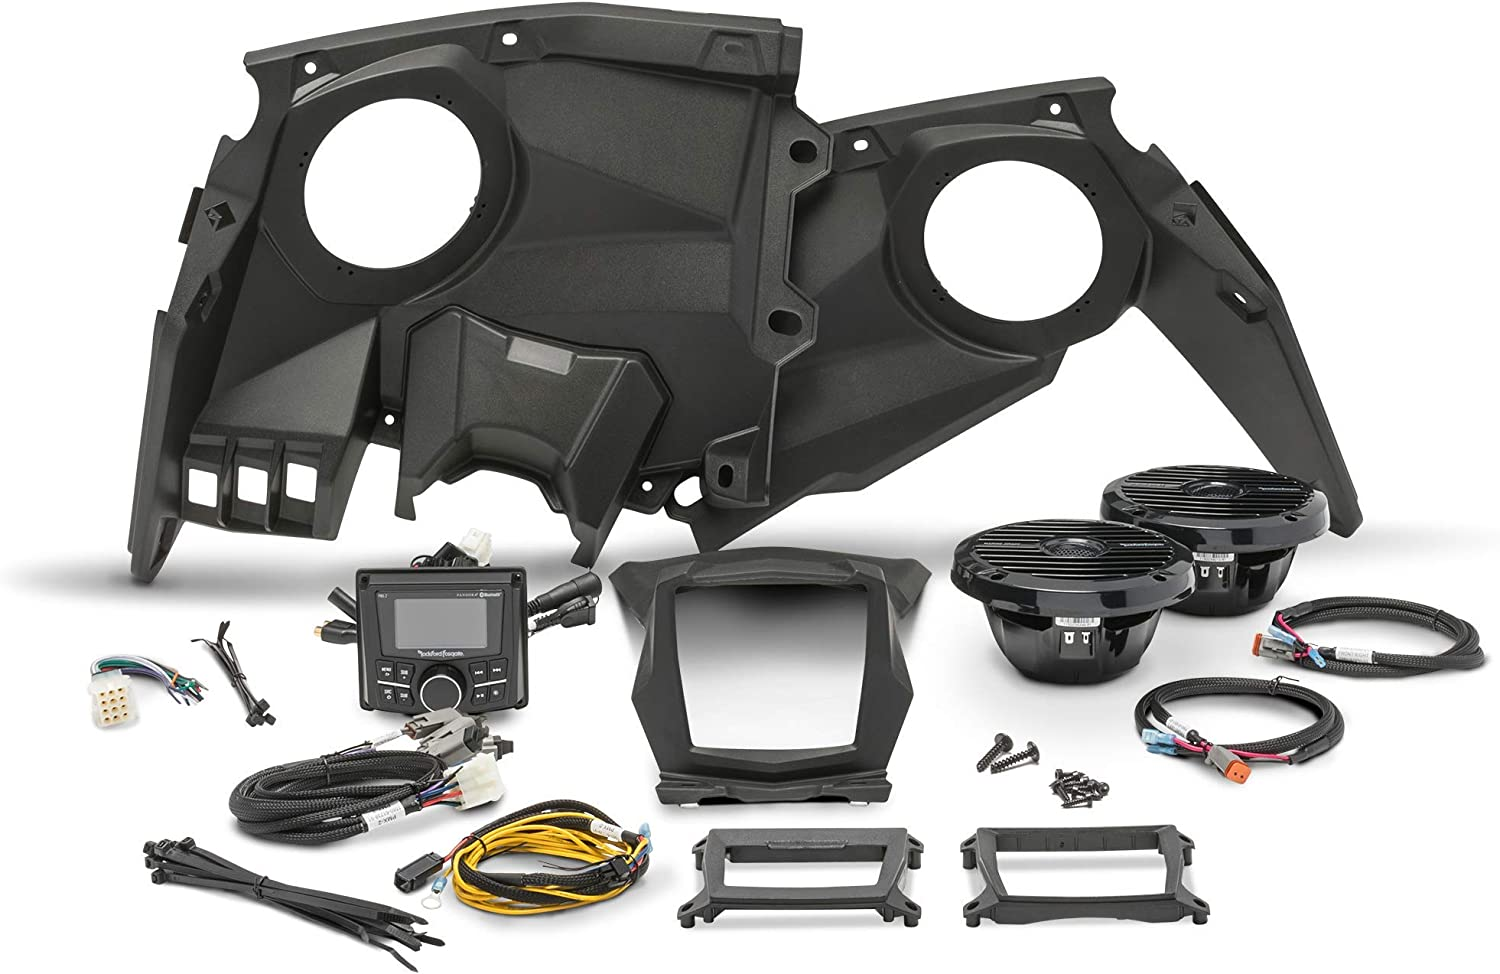 Rockford Fosgate X317-STAGE2 Stereo and Front Speaker Kit for Maverick X3 Models (2017-2019)